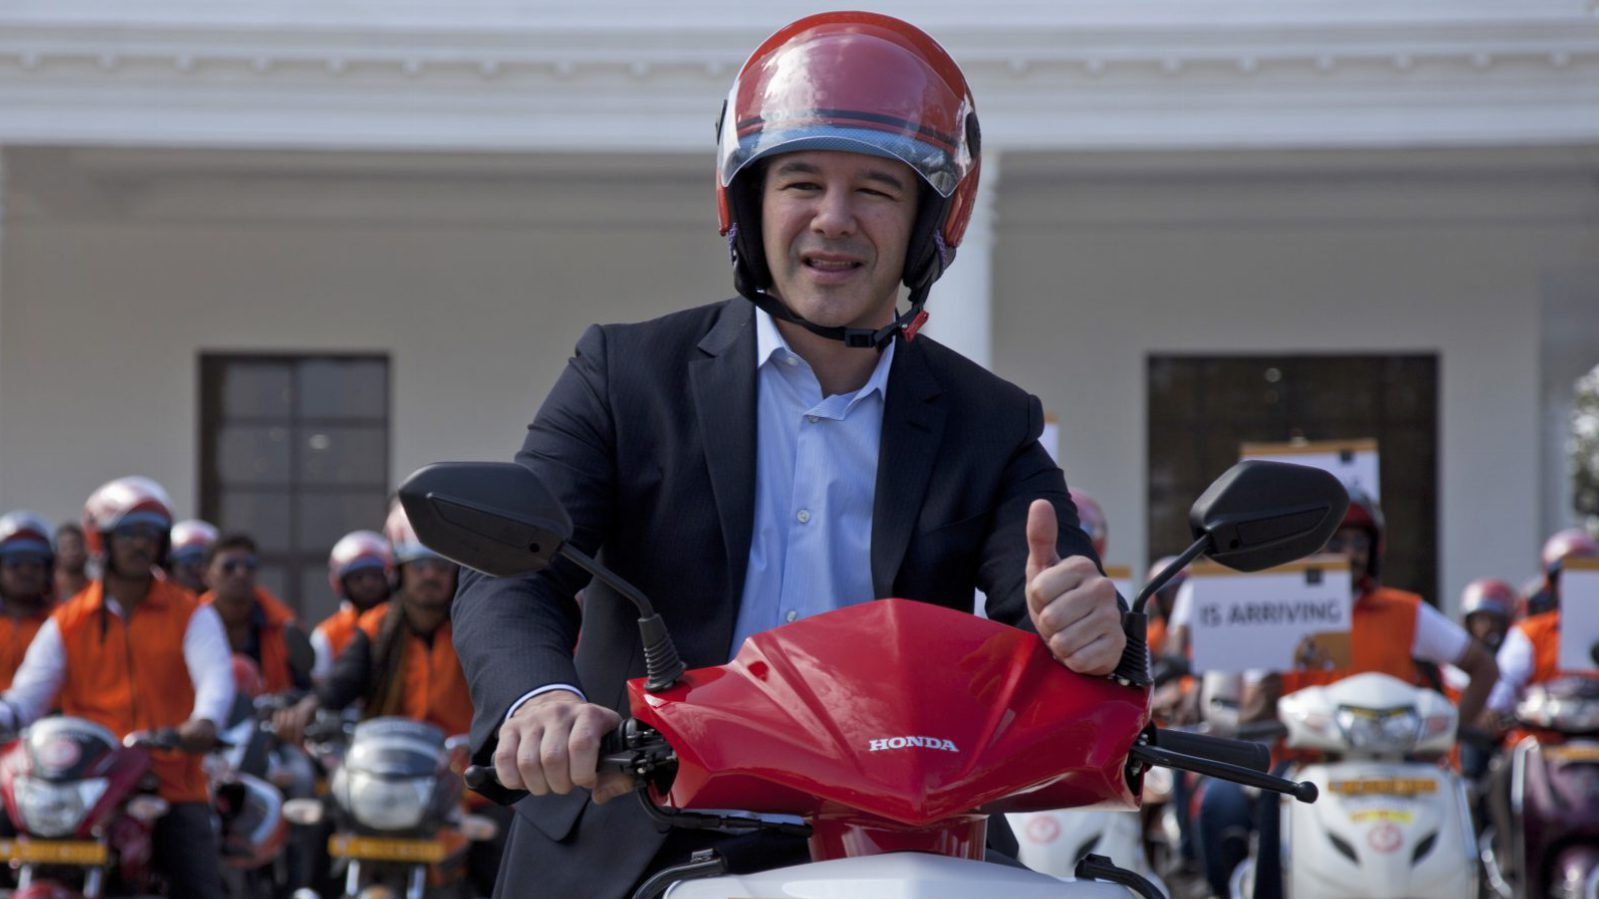 Uber CEO Travis Kalanick, poses during the launch of its bike-sharing product, uberMOTO, in Hyderabad, India, Tuesday, Dec. 13, 2016. (AP Photo/Mahesh Kumar A.)